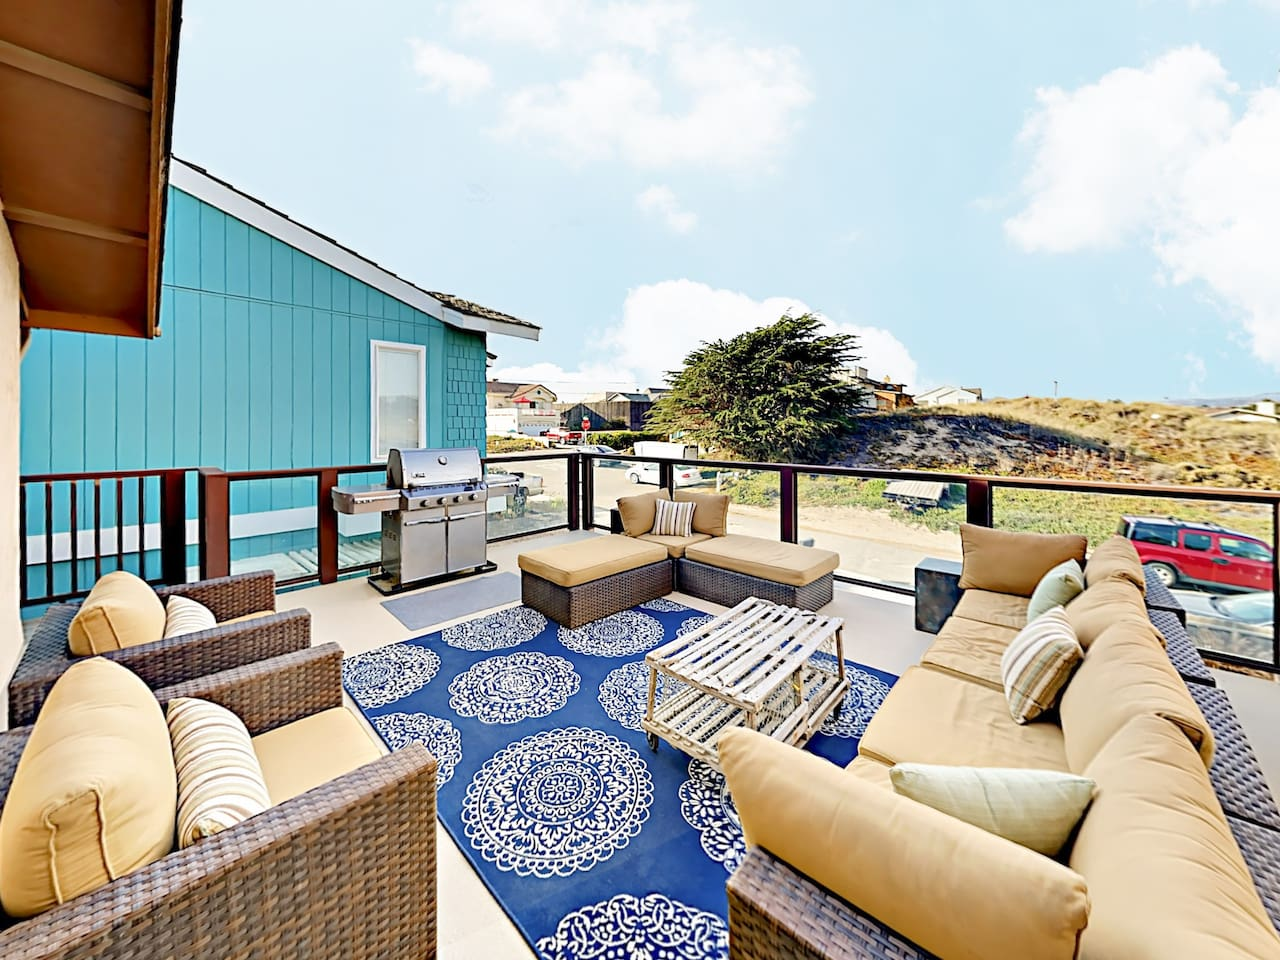 Welcome to Oceano! Spend time together on the large deck, which offers ample cushioned seating and ocean views.